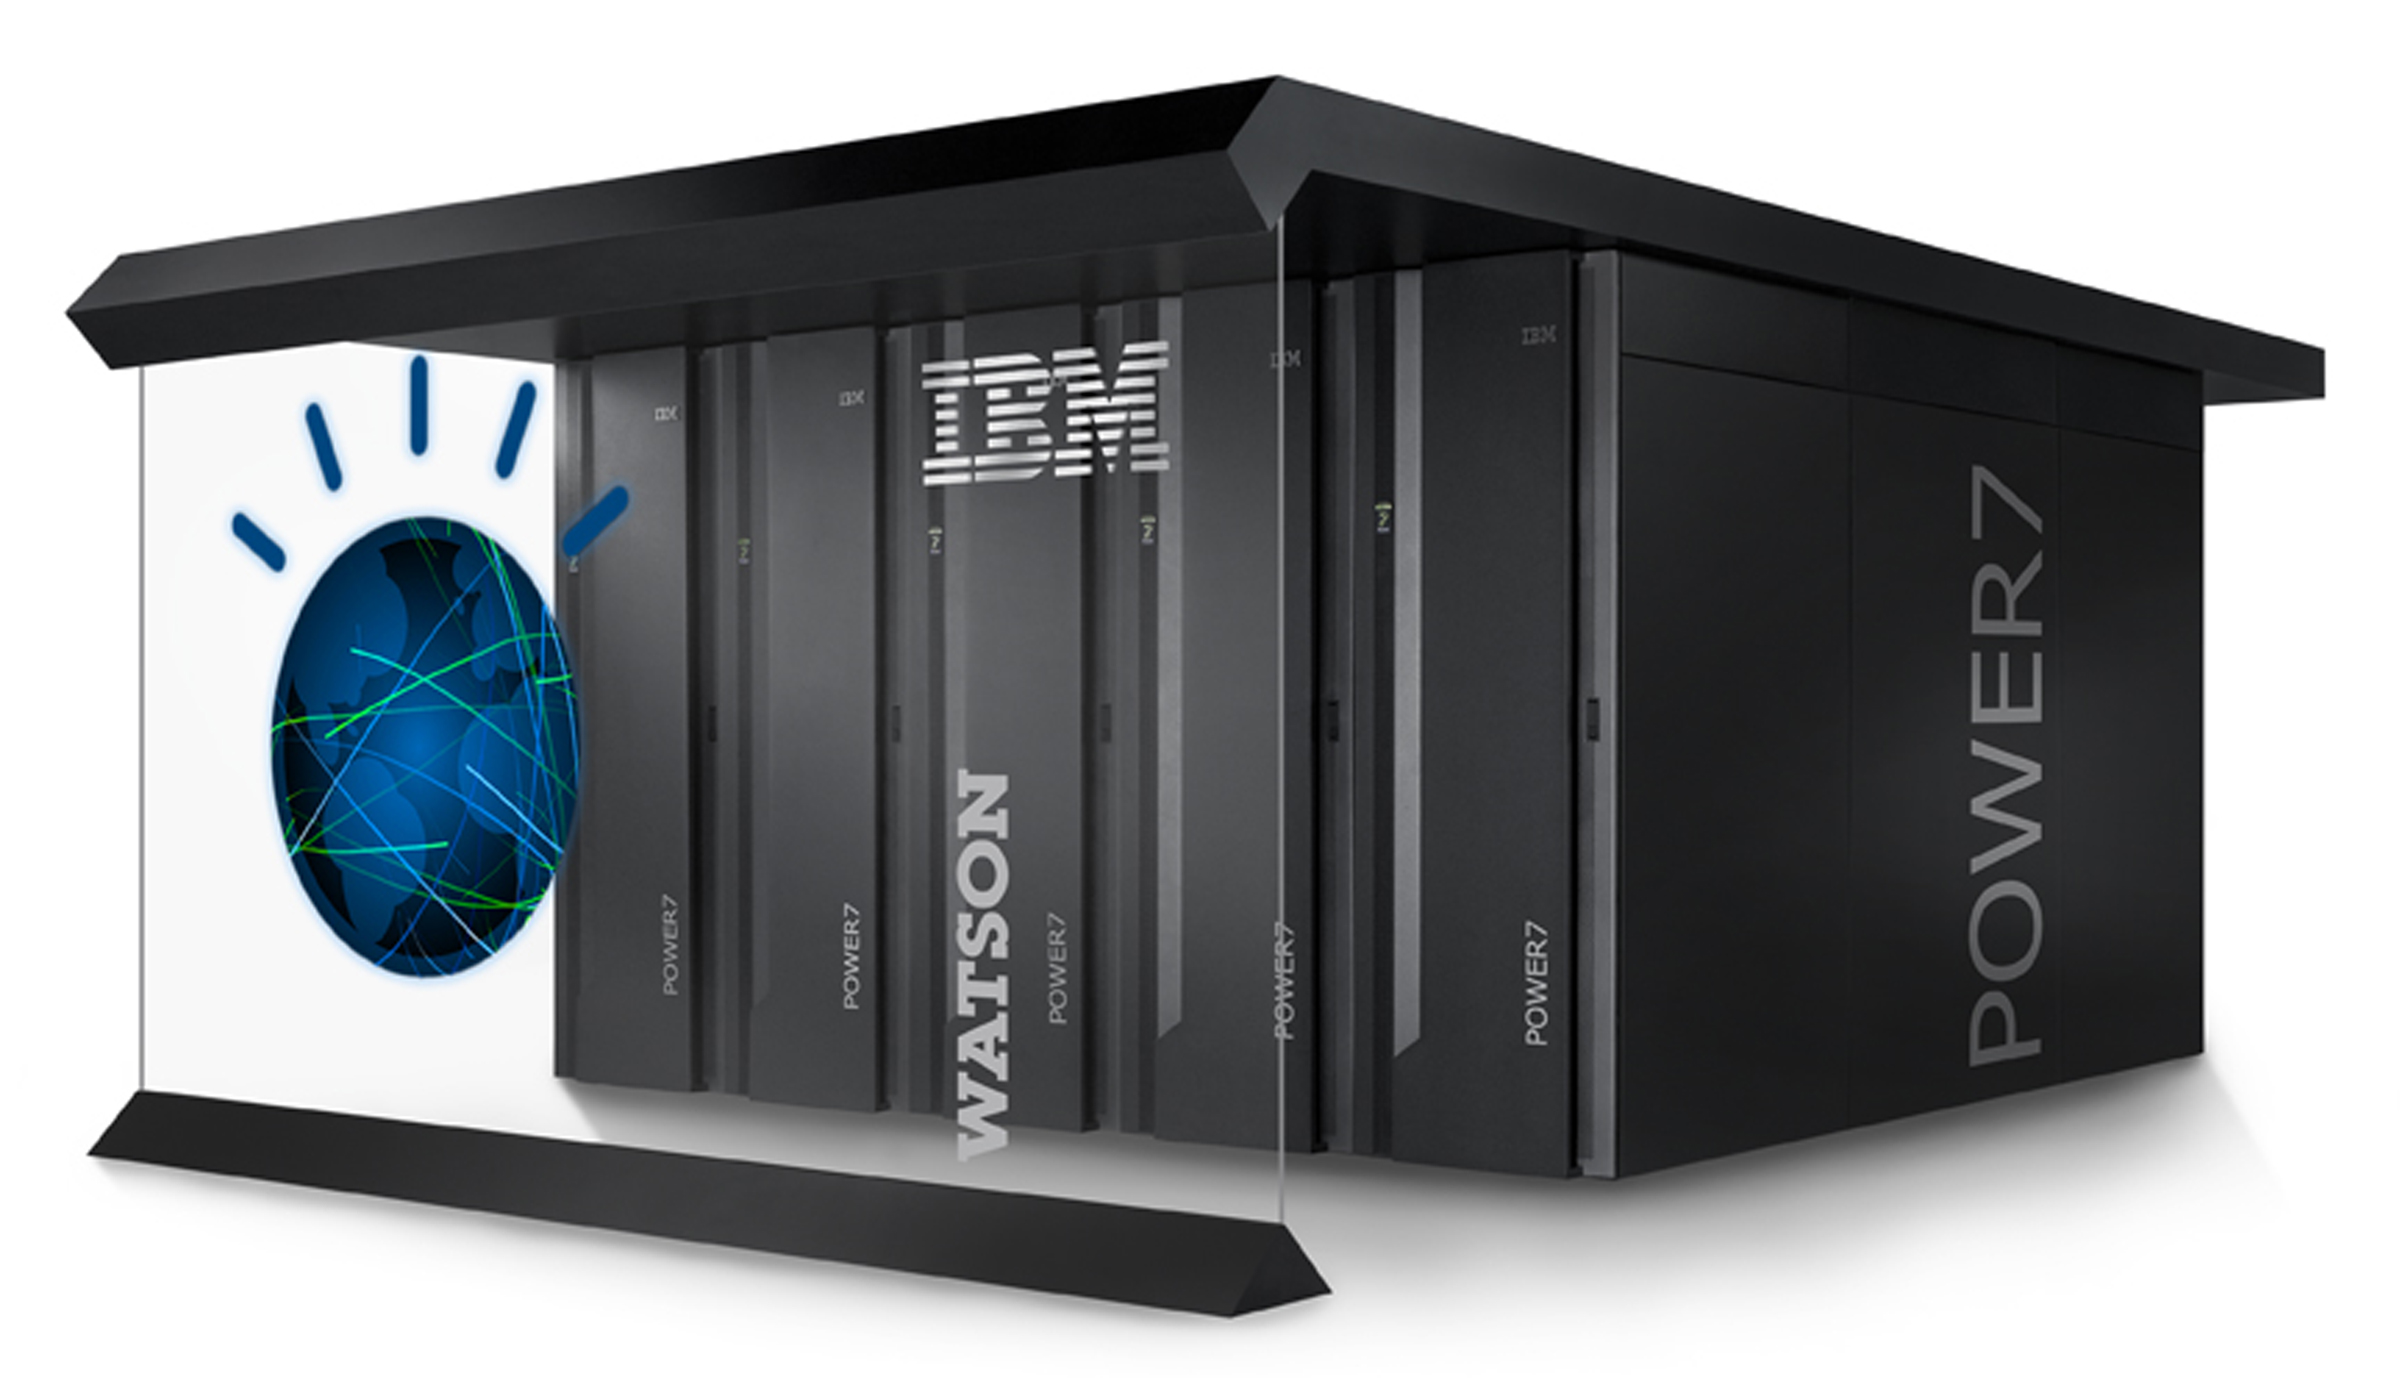 Watson is a AI computer powered by IBM POWER7, a work-load optimized system that can answer questions posed in natural language over a nearly unlimited range of knowledge. Credit: IBM.